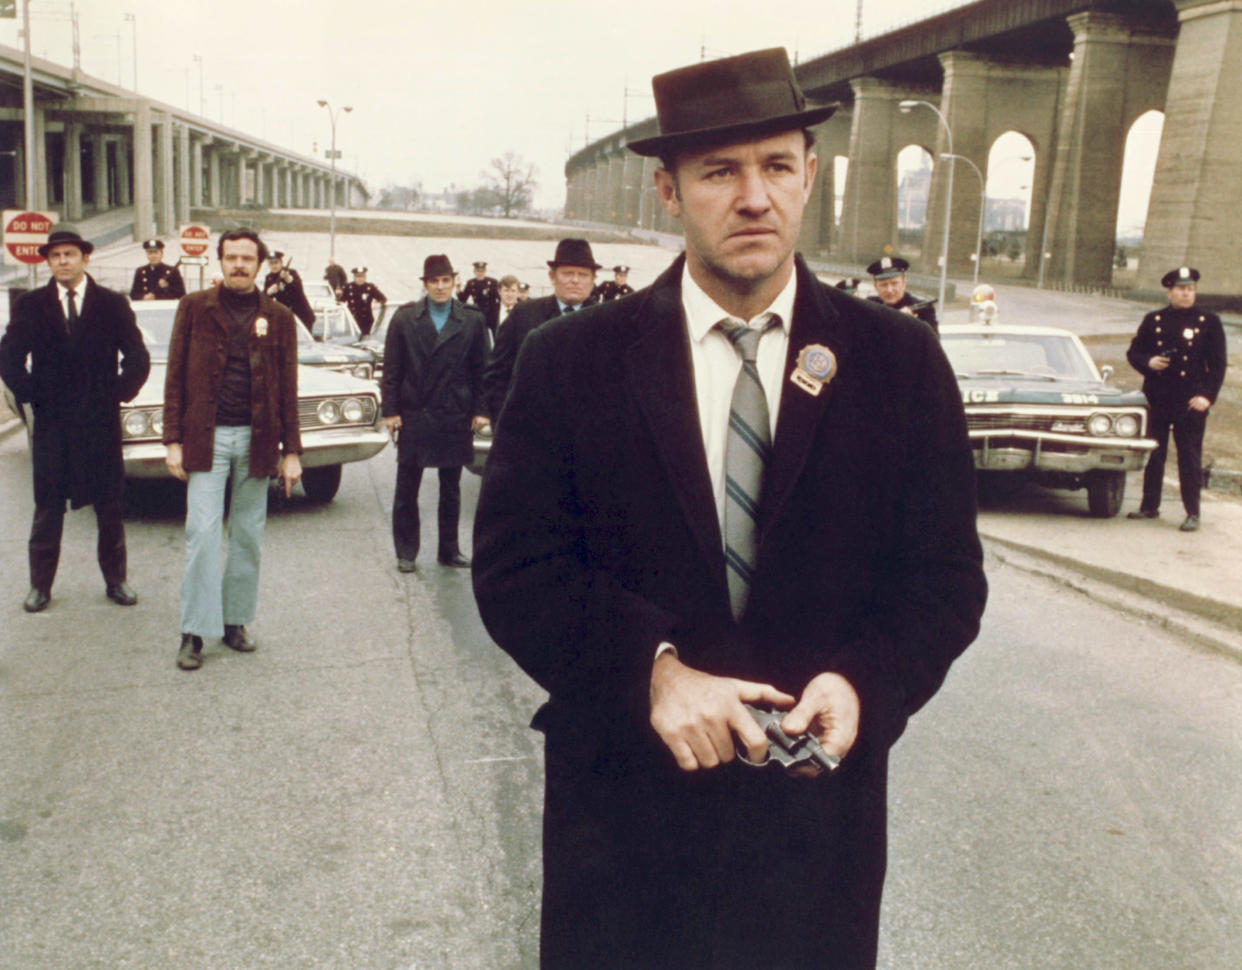 Gene Hackman stars in William Friedkin's 1971 classic, The French Connection, which celebrates its 50th anniversary this year (Photo: 20th Century Fox Film Corp./courtesy Everett Collection)